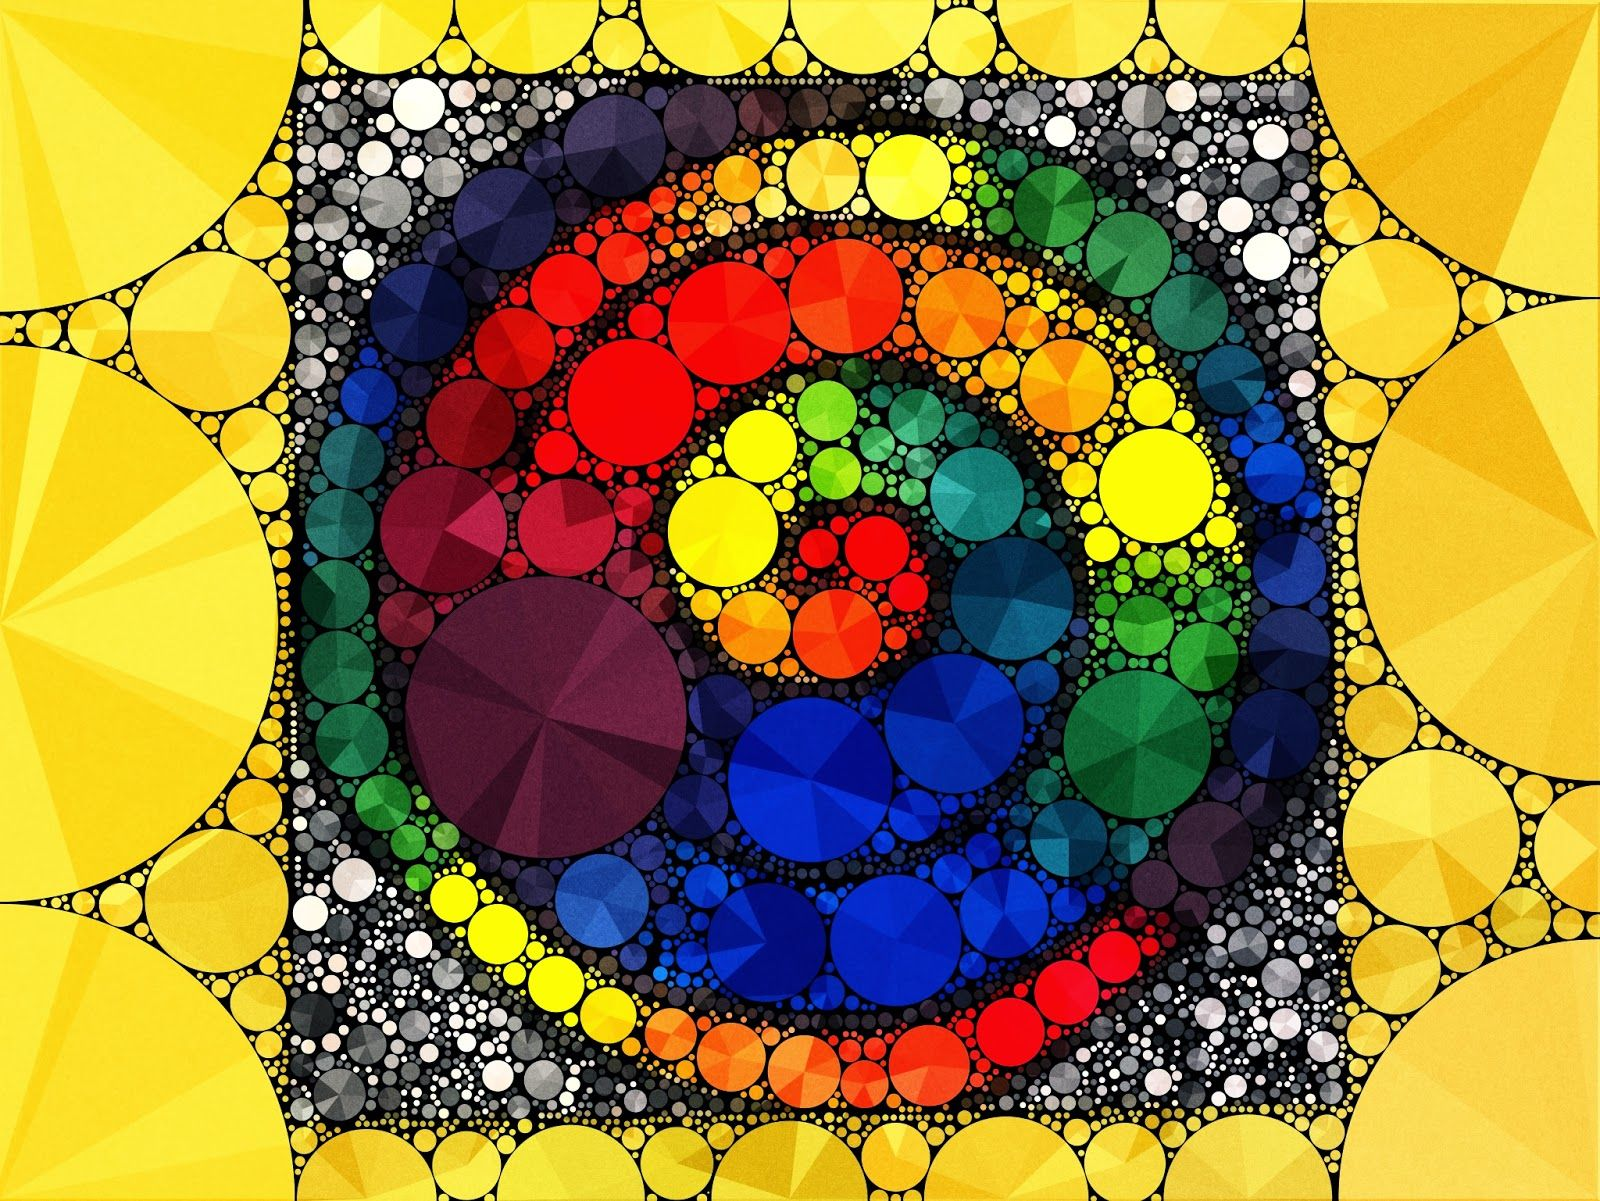 """Fun way to do the color wheel using paint and an app called """"Percolator"""""""